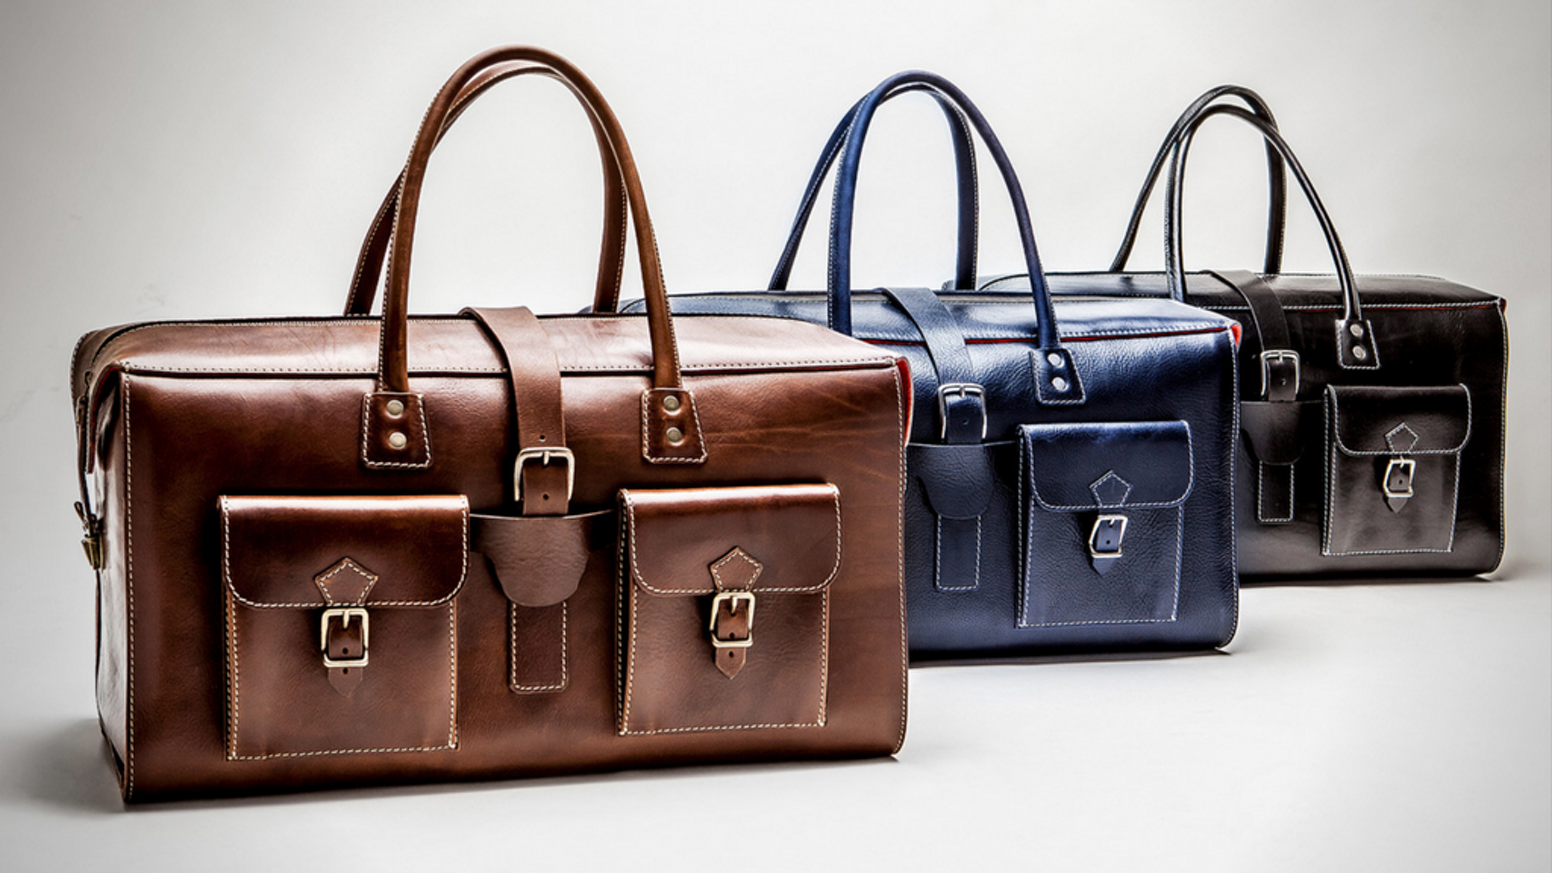 Designed To Never Lose Their Shape And Turn Heads Meqnes Bags Are Handcrafted From Calfskin